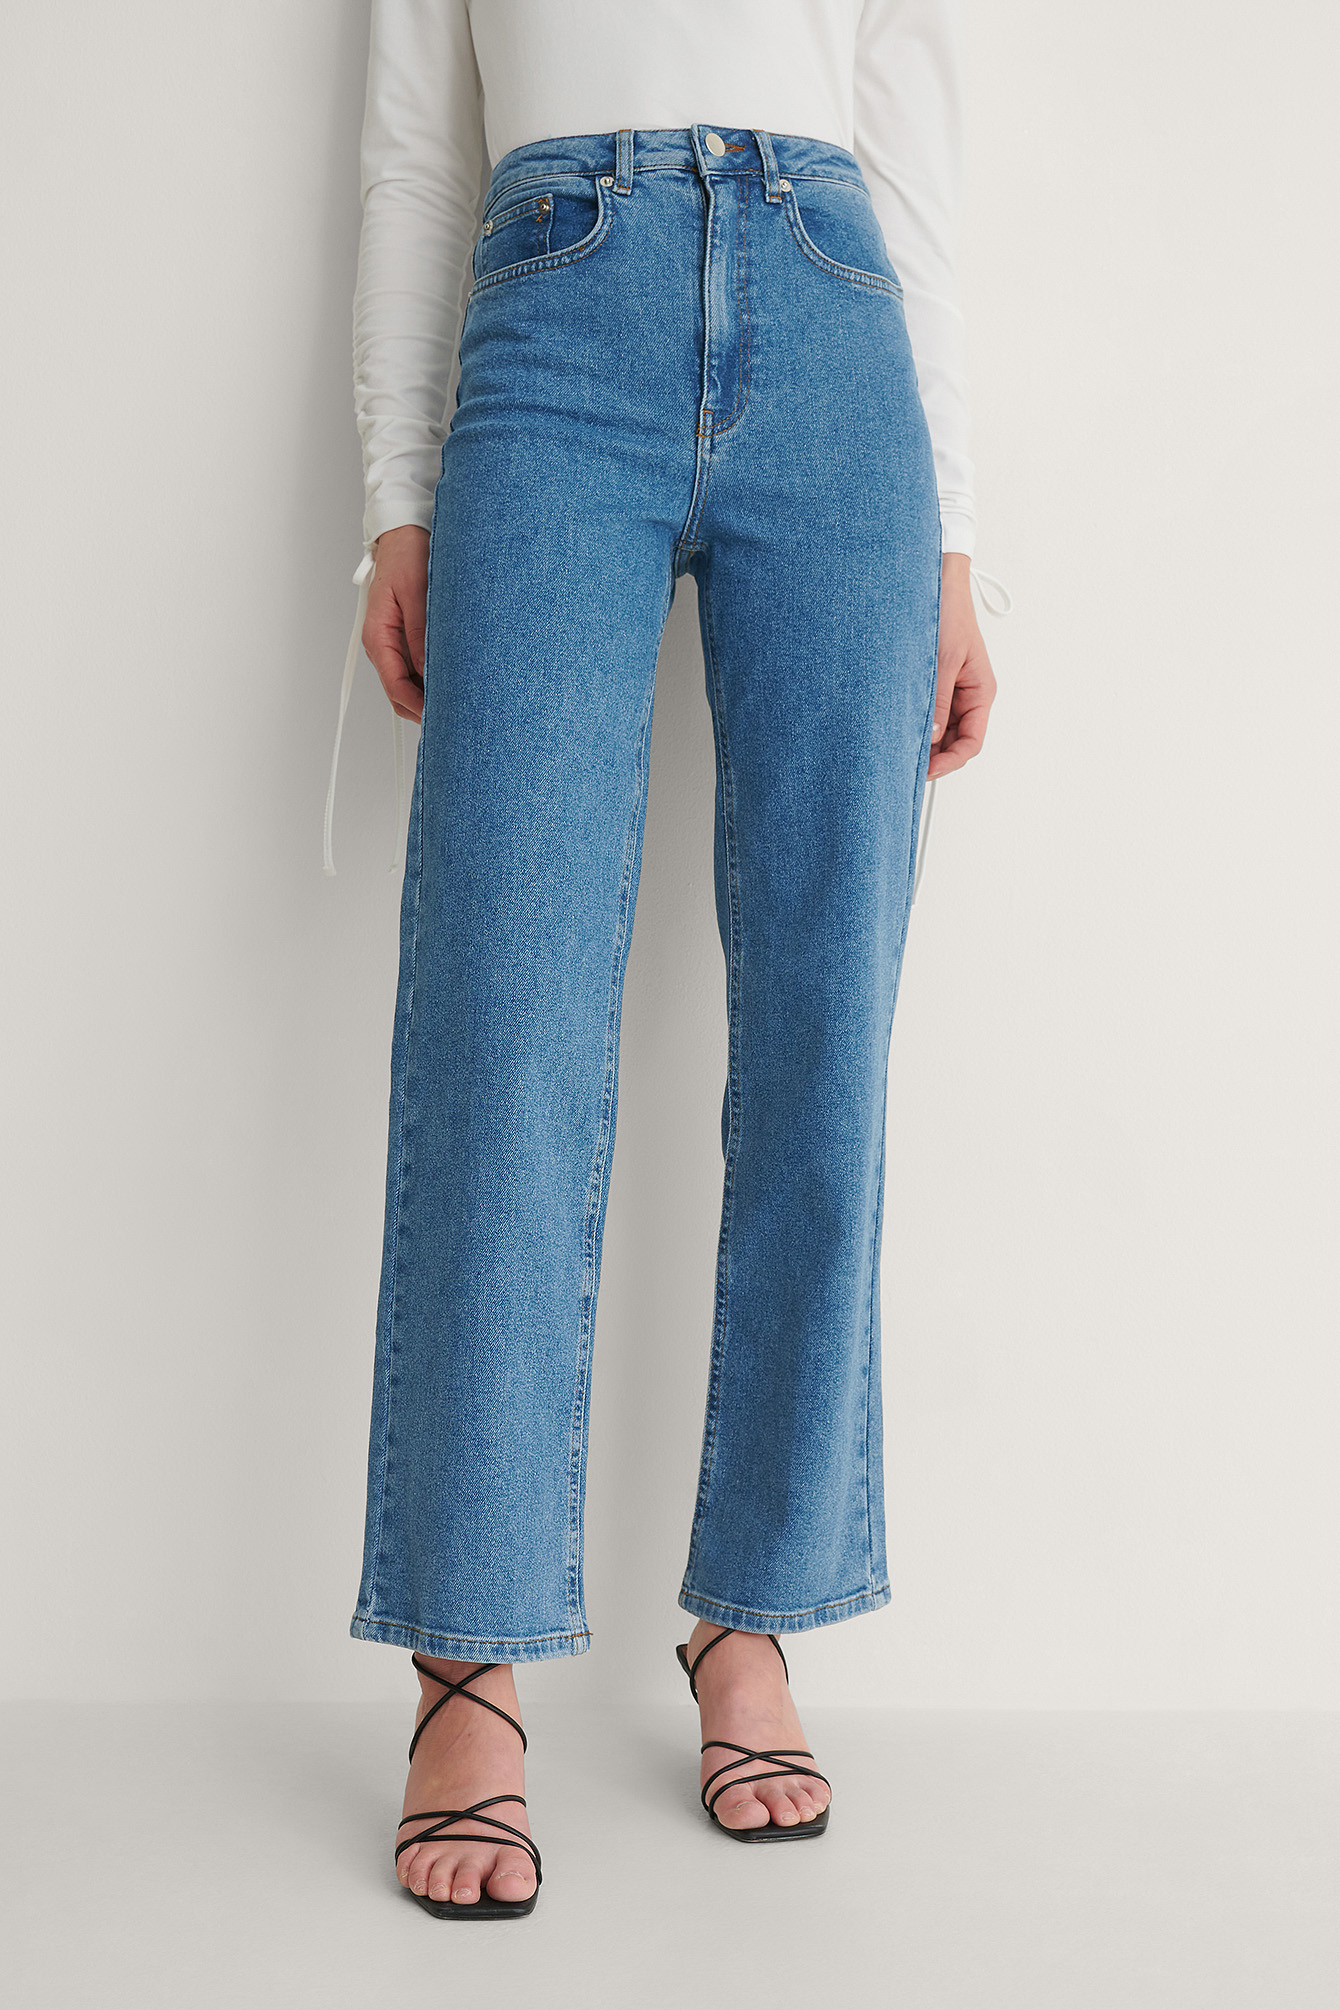 Denim Blue Organic High Waisted Straight Jeans